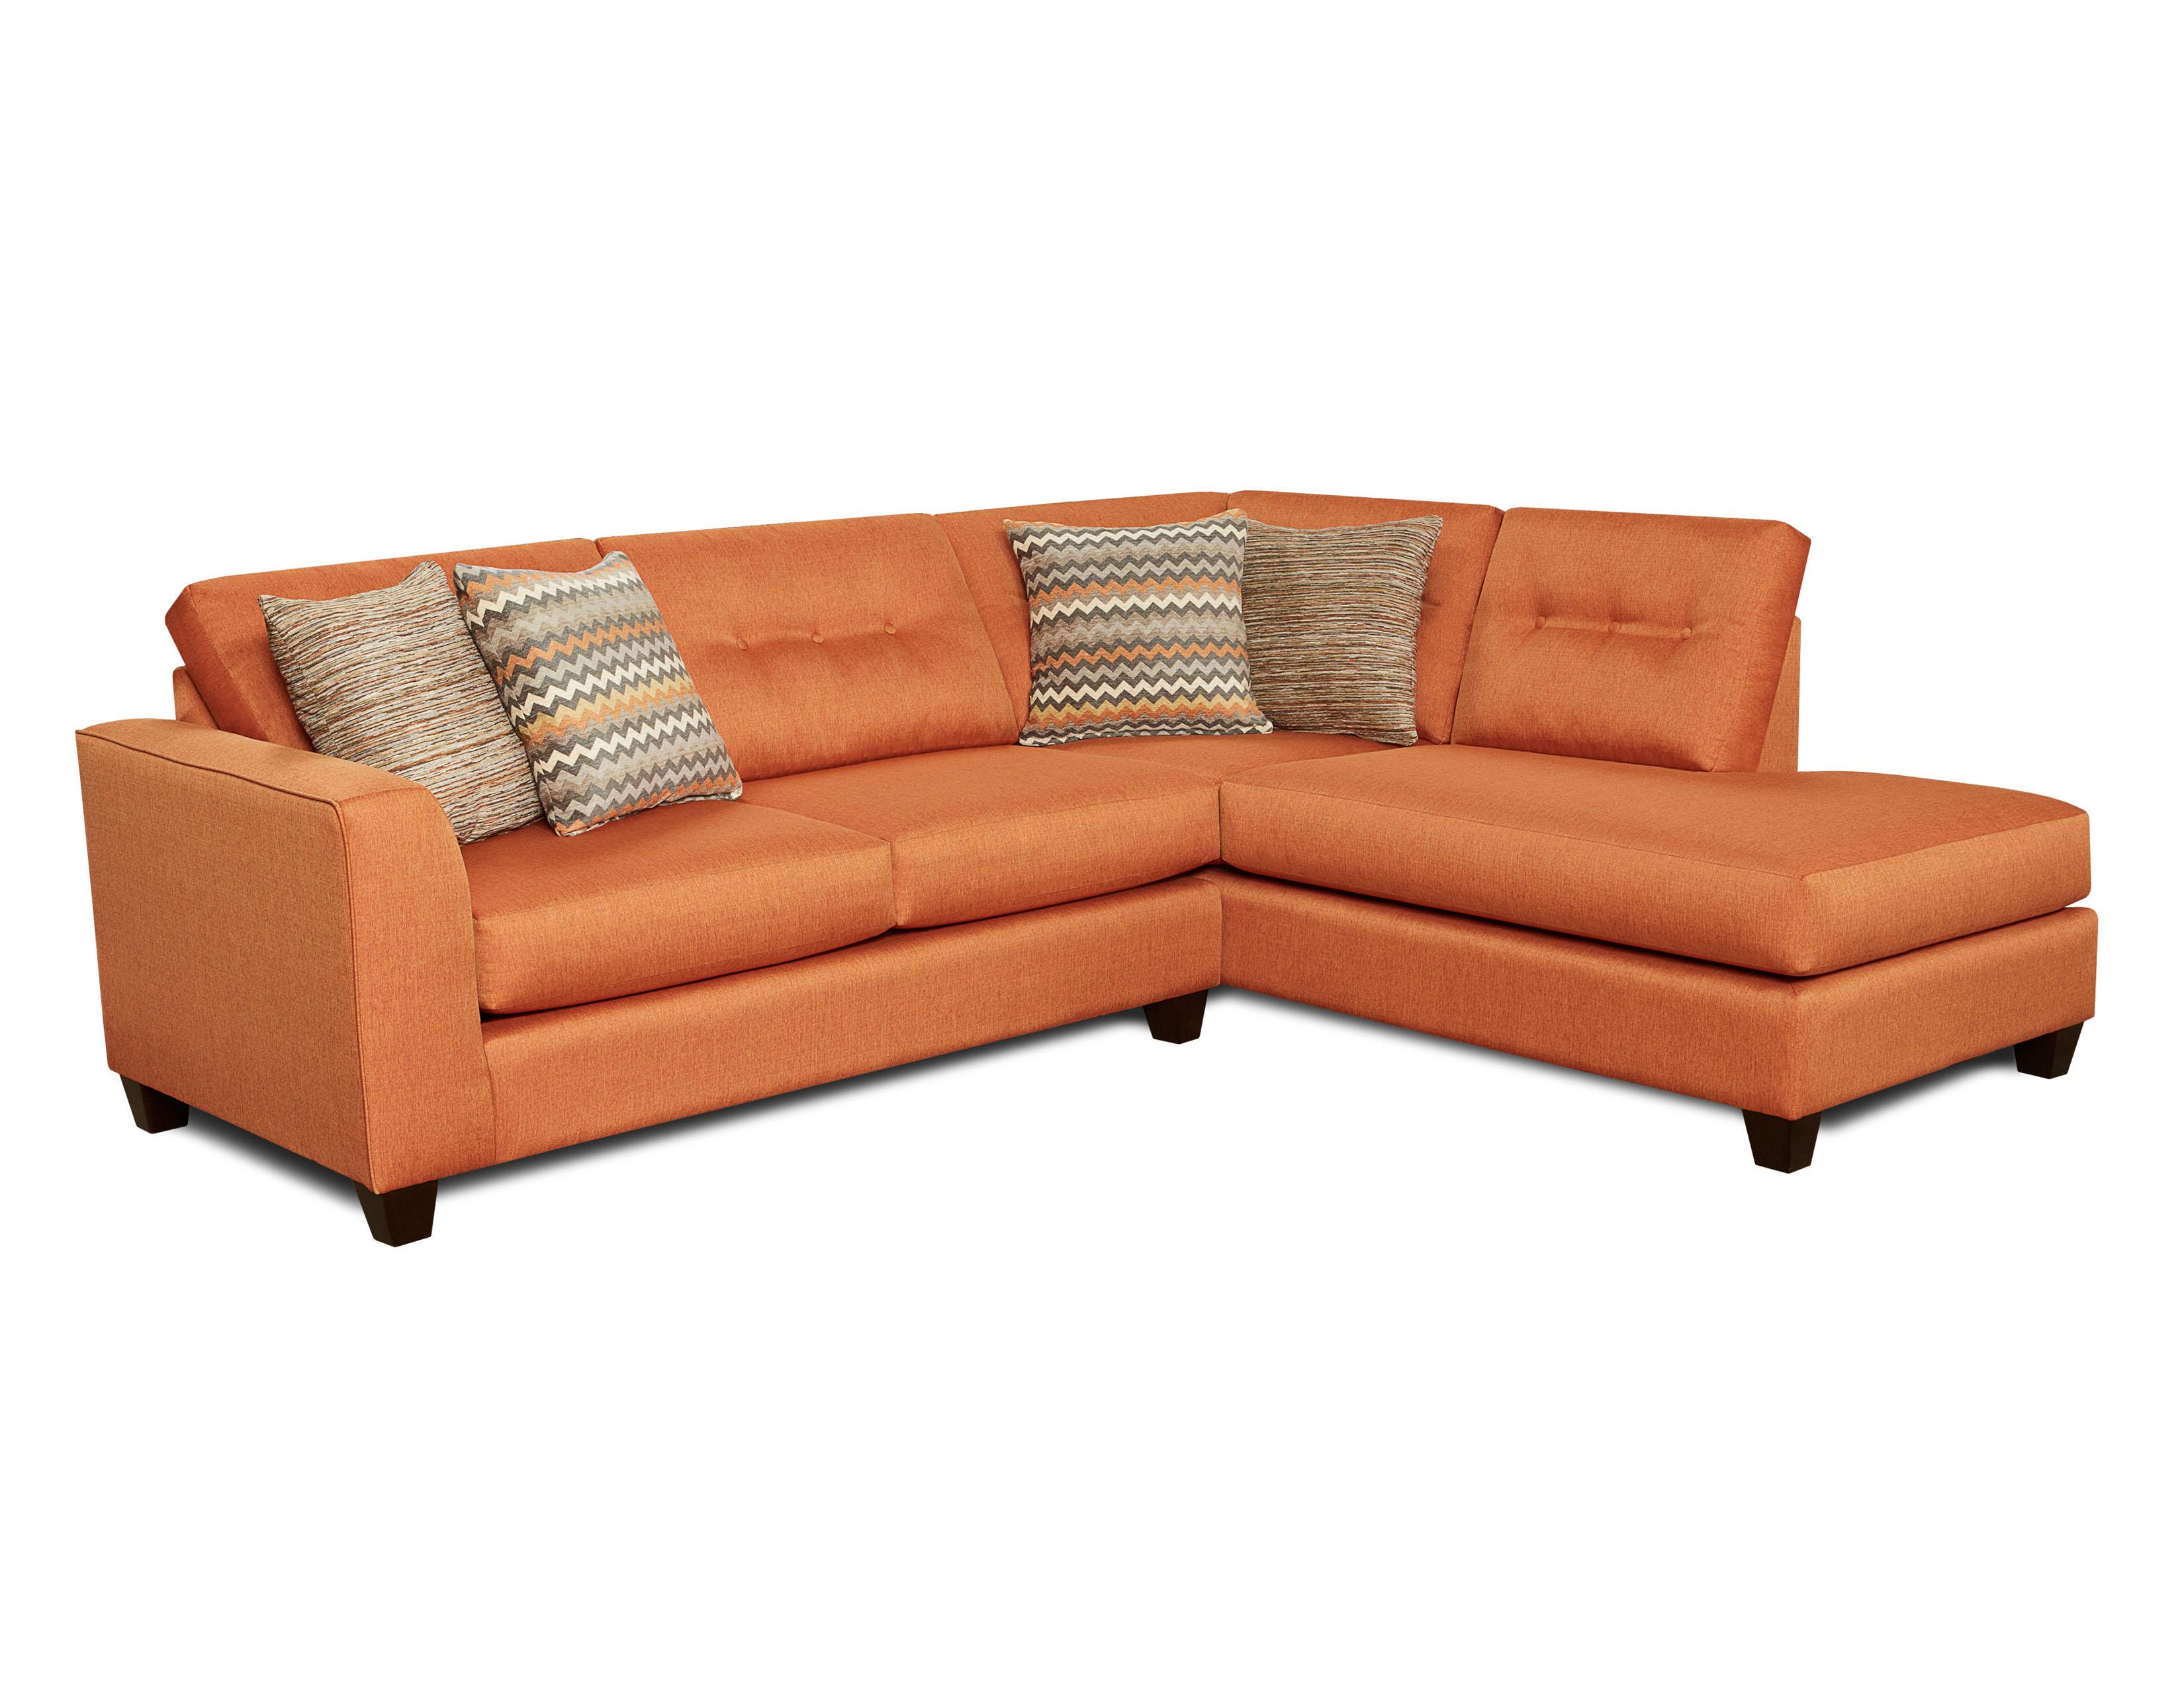 Fusion Furniture Reaction Sectional Sofa - Item Number: 1515+1516